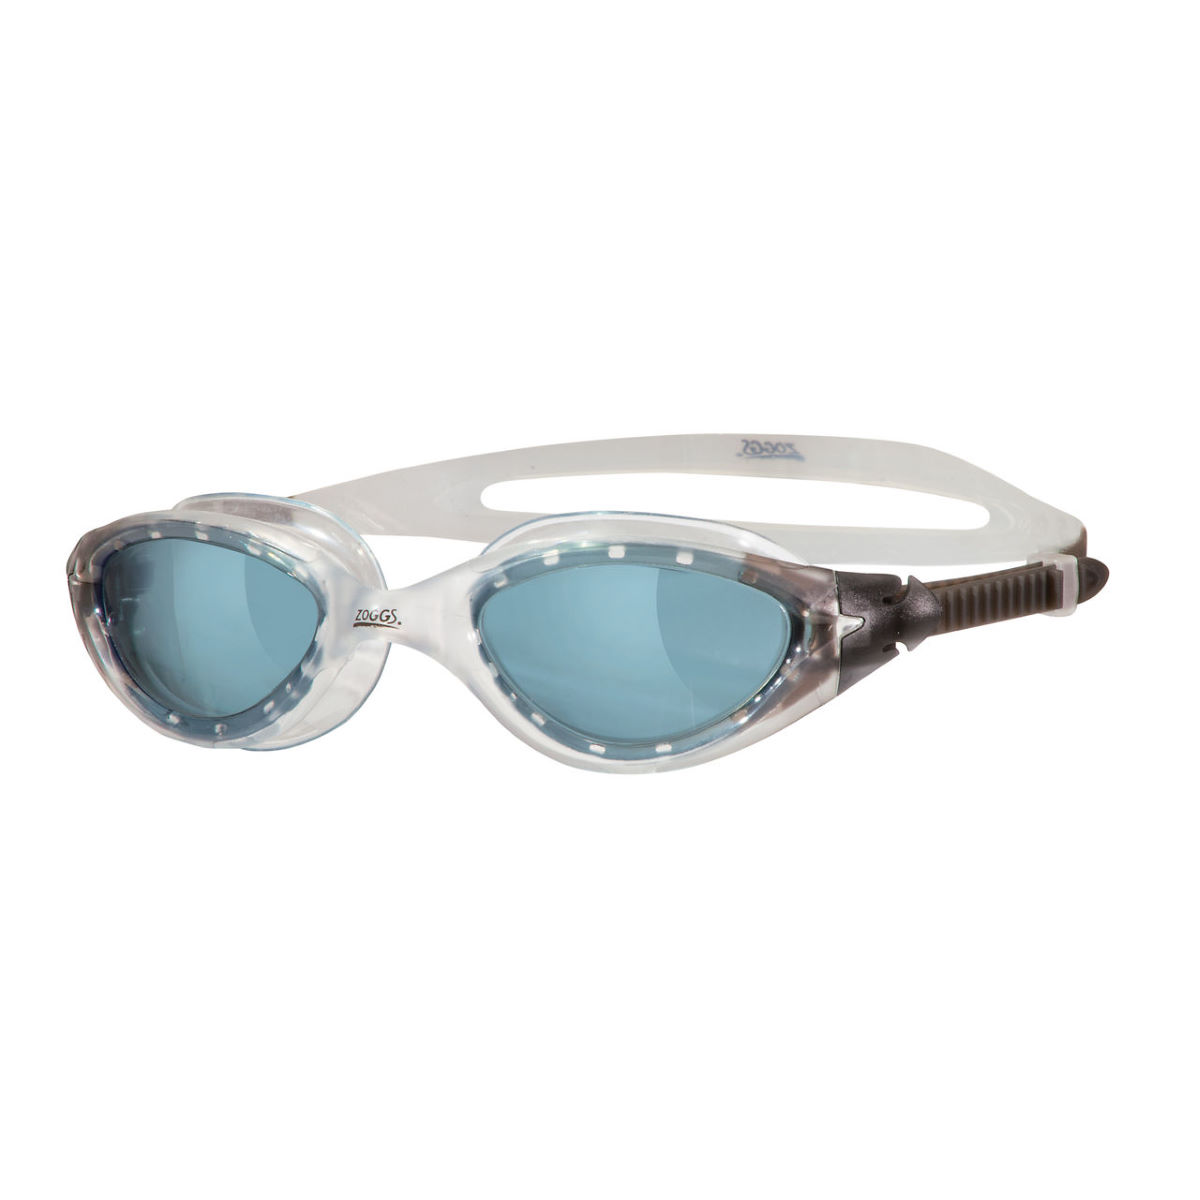 Lunettes de natation Zoggs Panorama (2015) - Taille unique Smoke / Clear Lunettes de natation Adulte